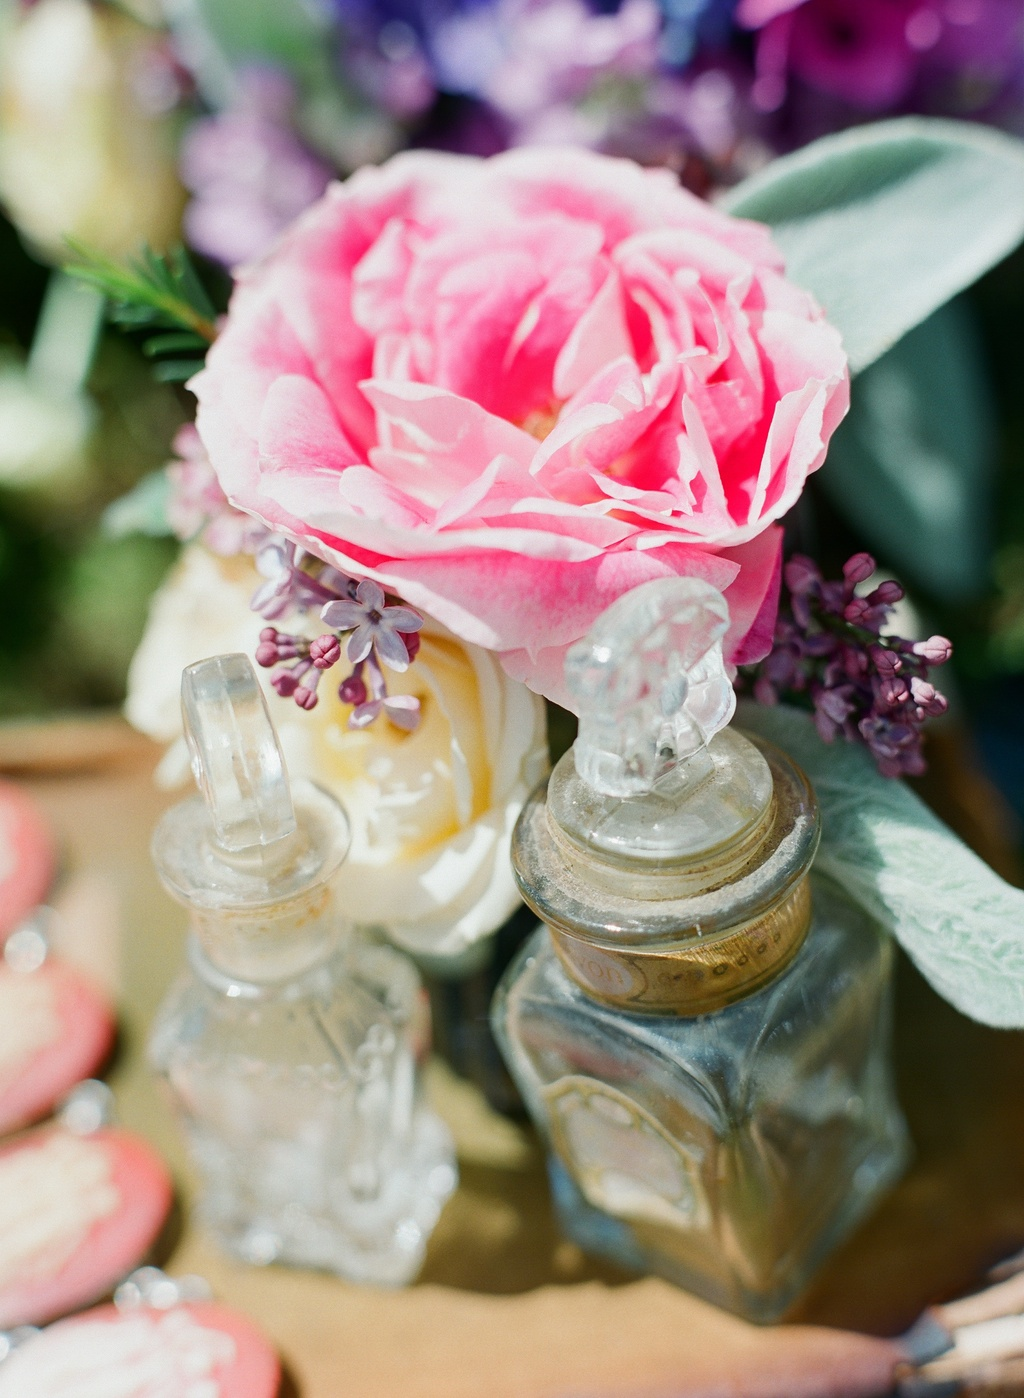 Styled-wedding-beaux-arts-tea-time-monique-lhuillier-santa-barbara-chic-flowers-antique-bottles-pink-186.full